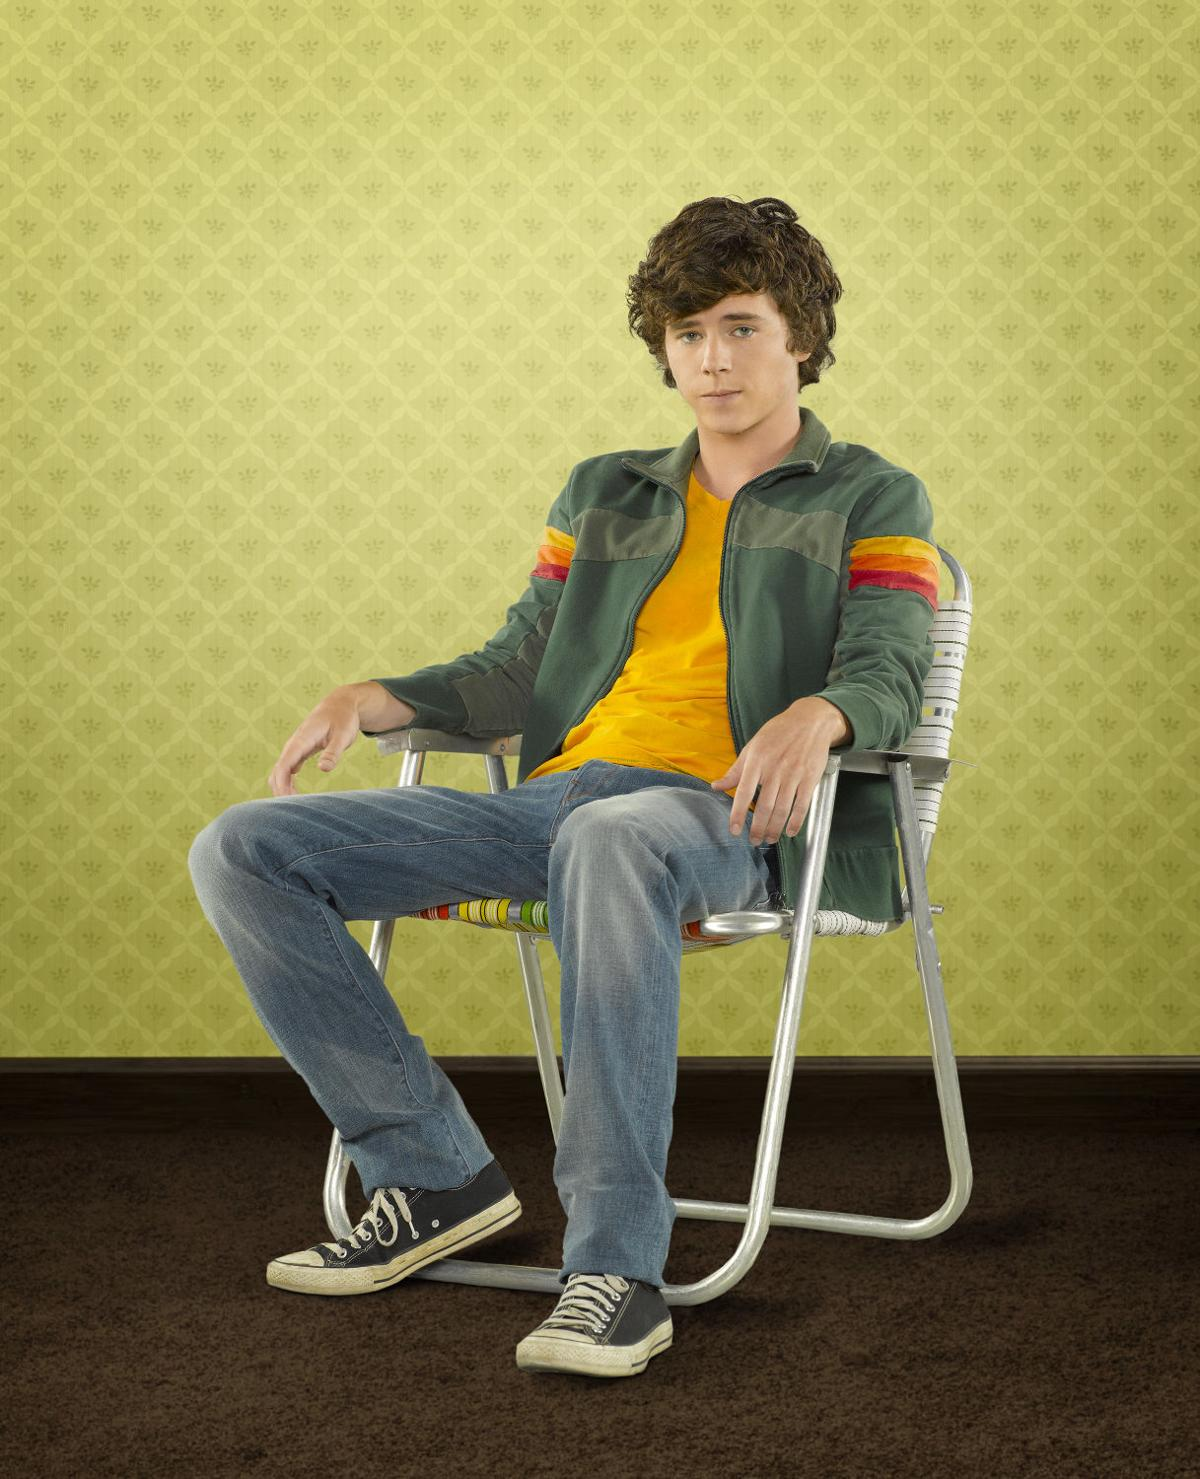 Charlie McDermott explores other ventures, considers 'The